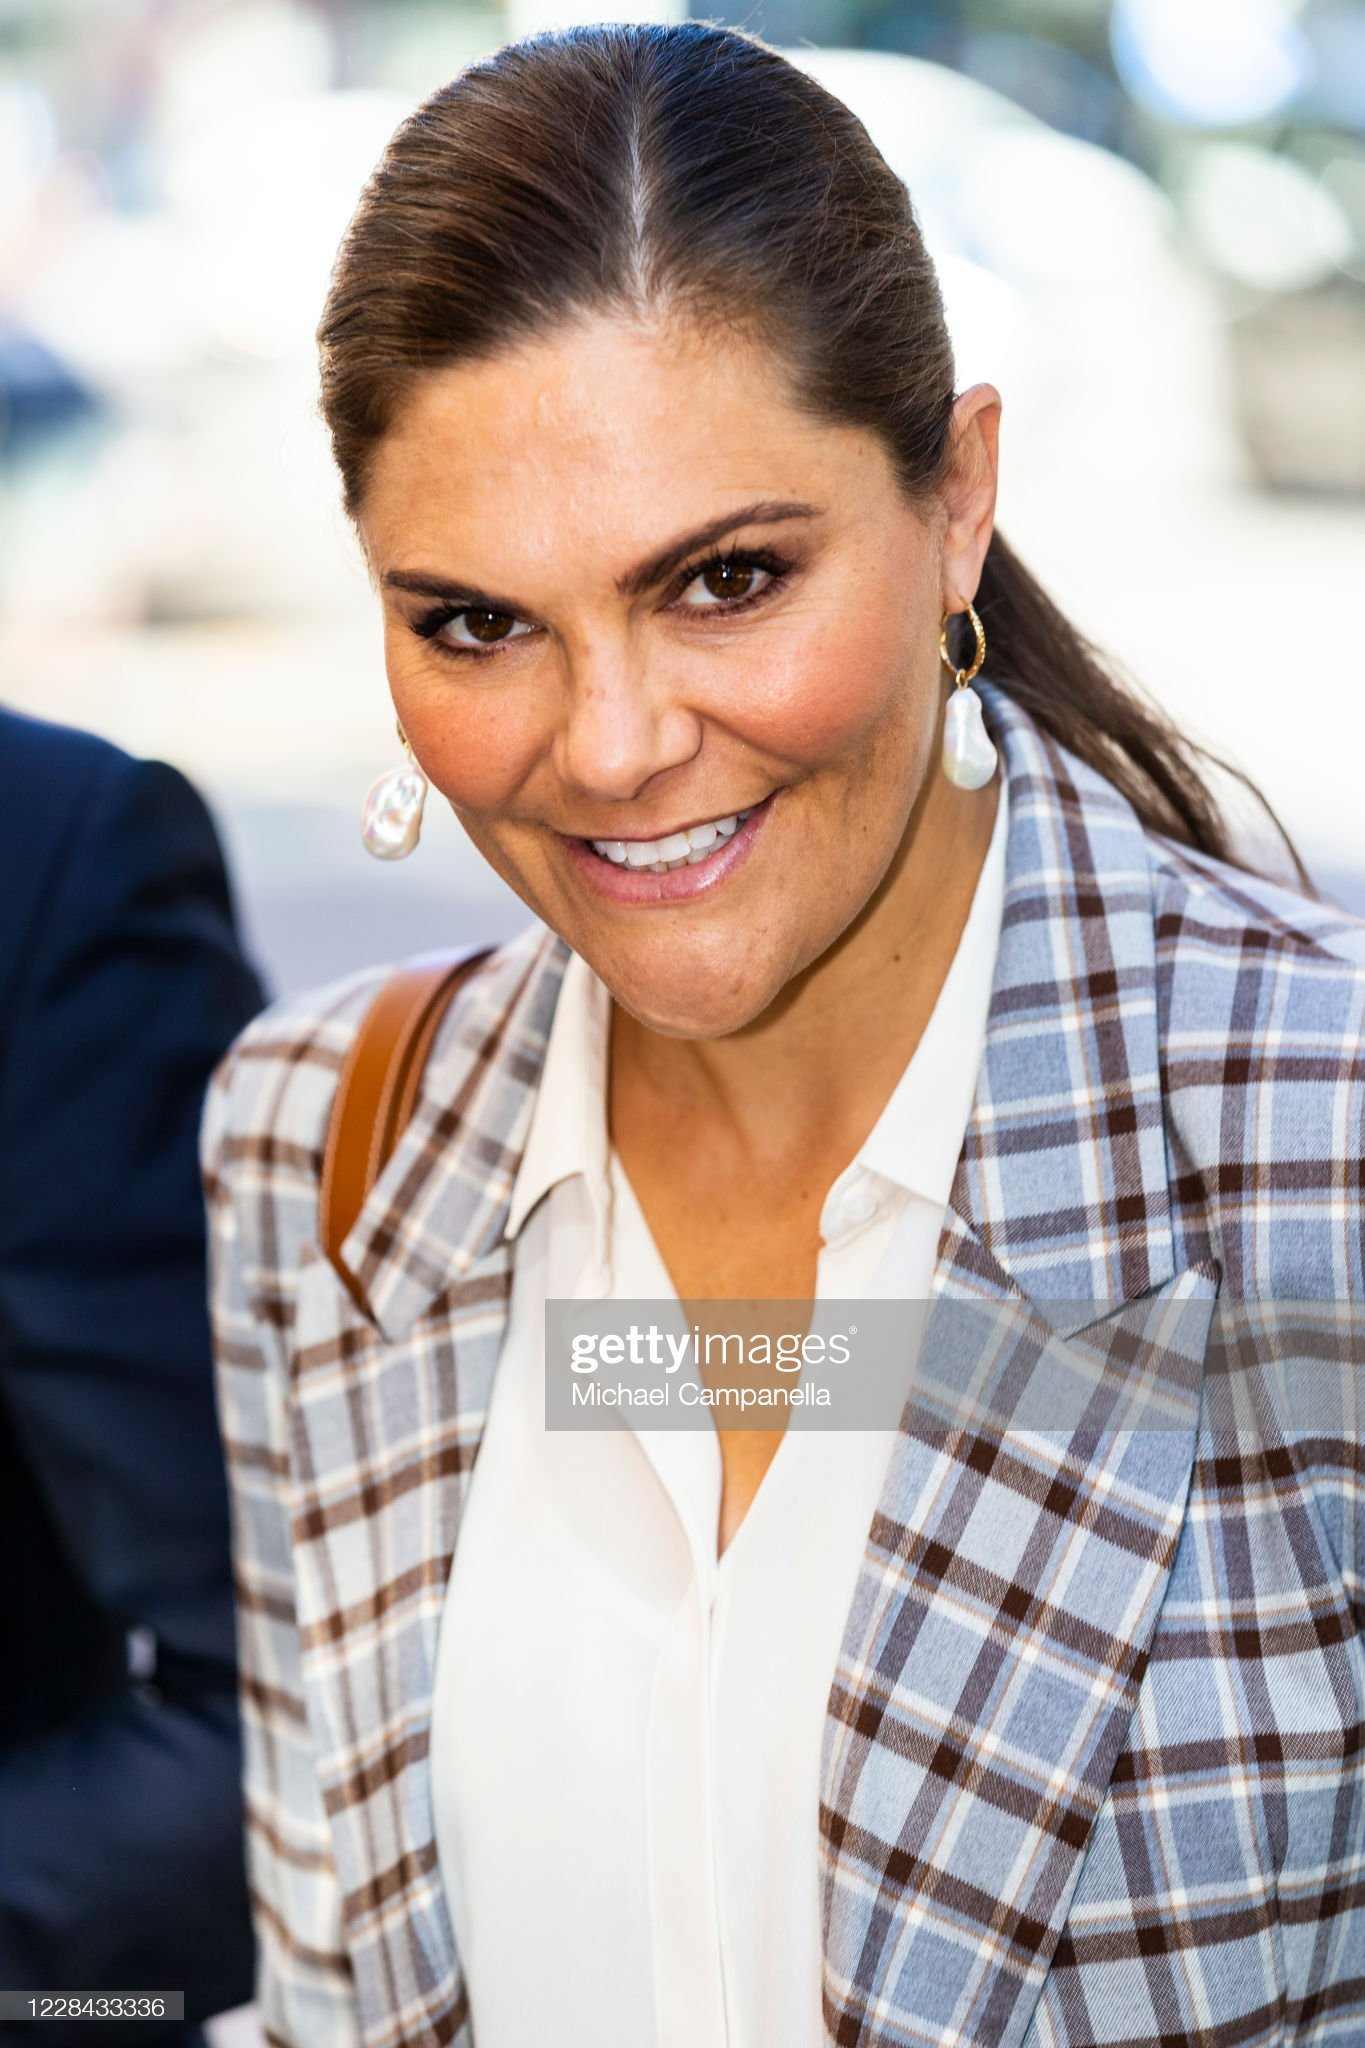 crown-princess-victoria-and-prince-daniel-of-sweden-visit-the-swedish-picture-id1228433336